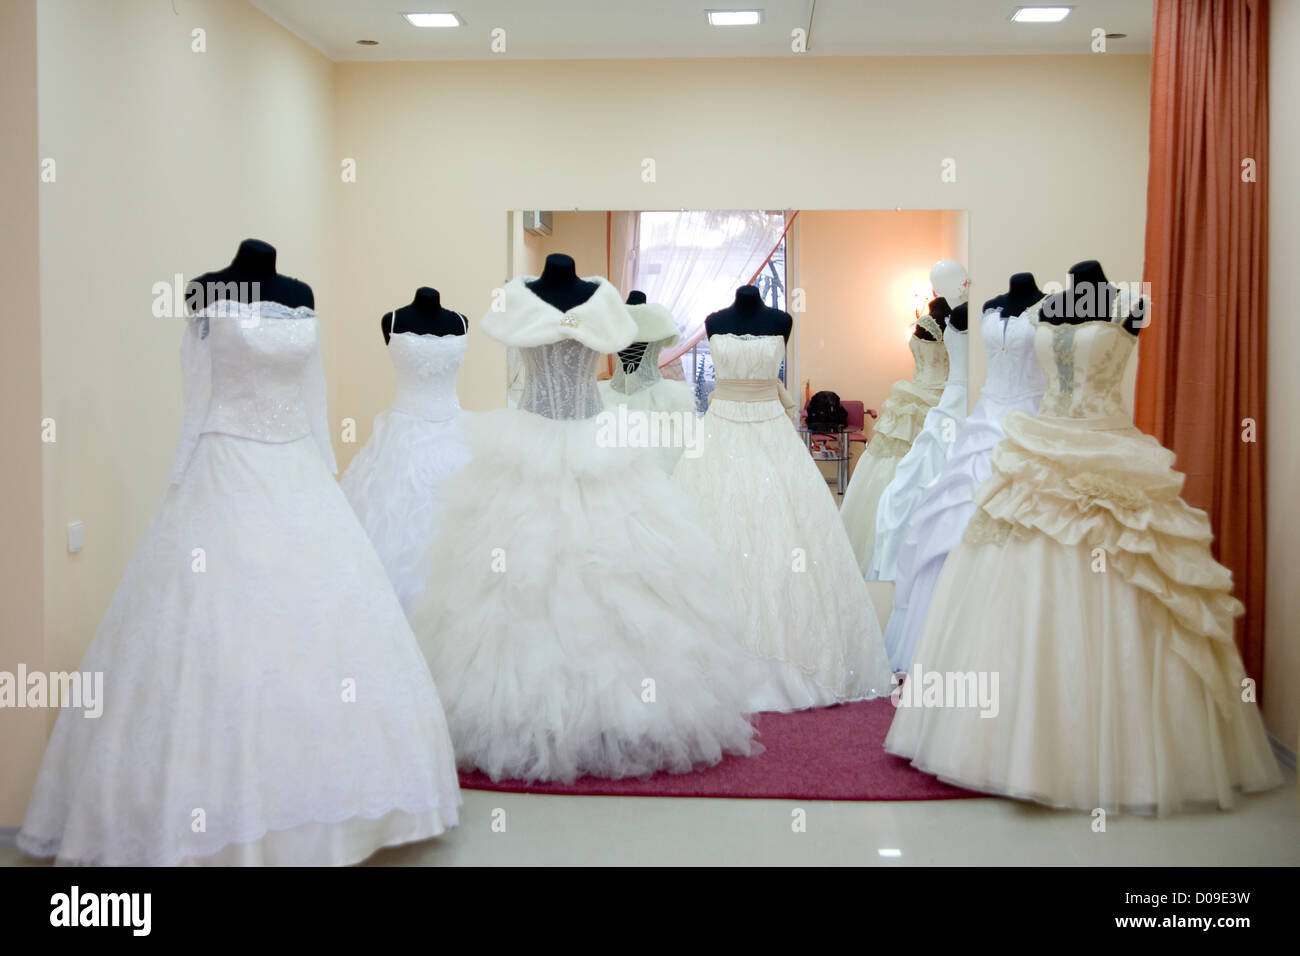 Shop window with wedding dresses on mannequins Stock Photo: 51839757 ...